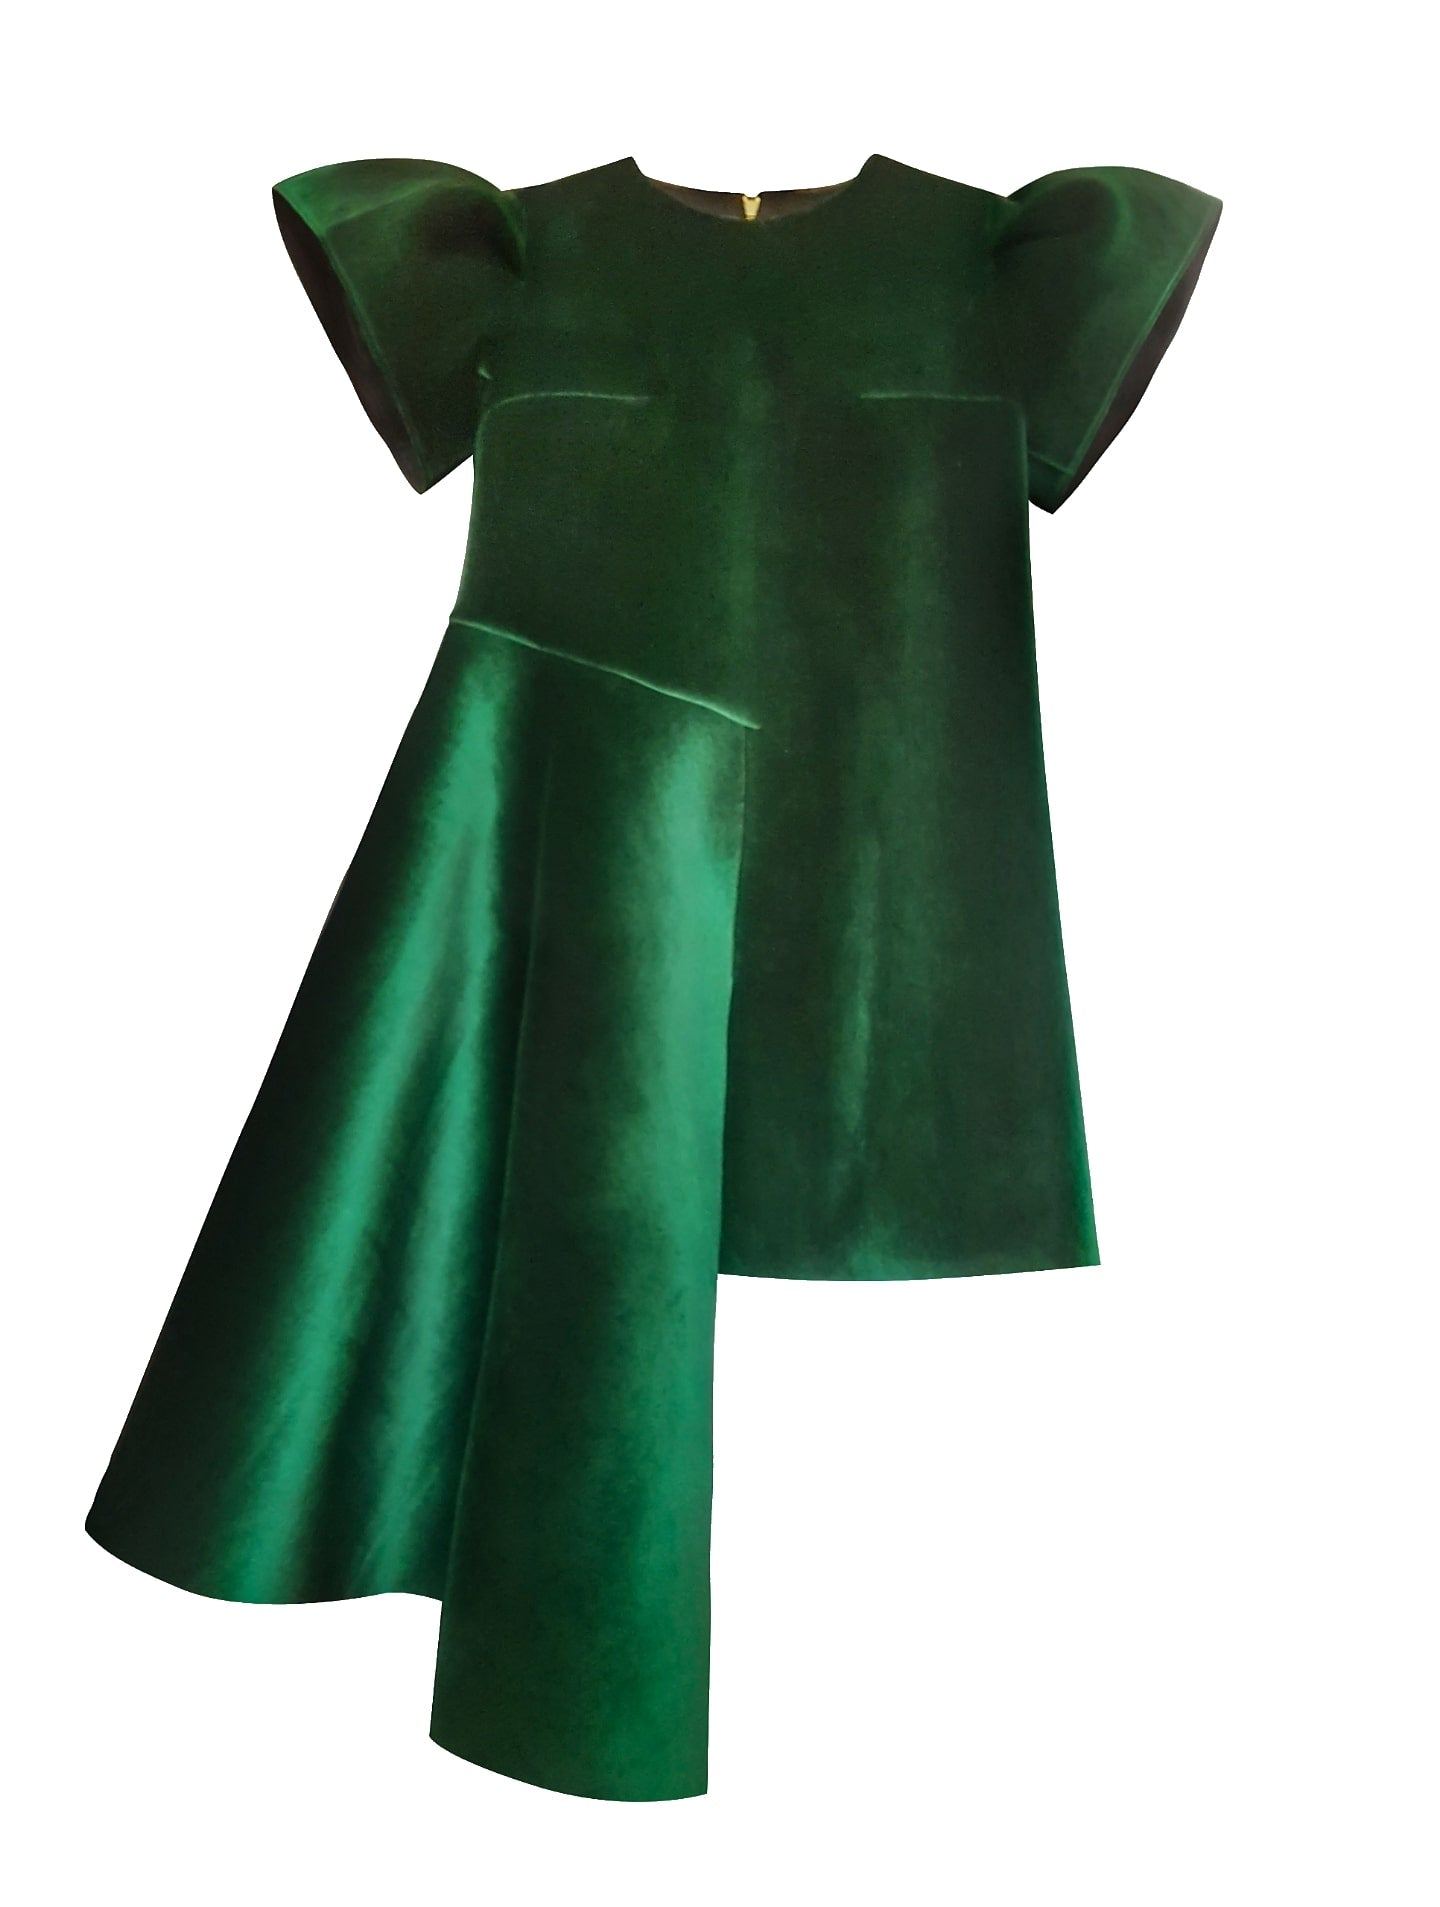 Green neoprene-velvet dress